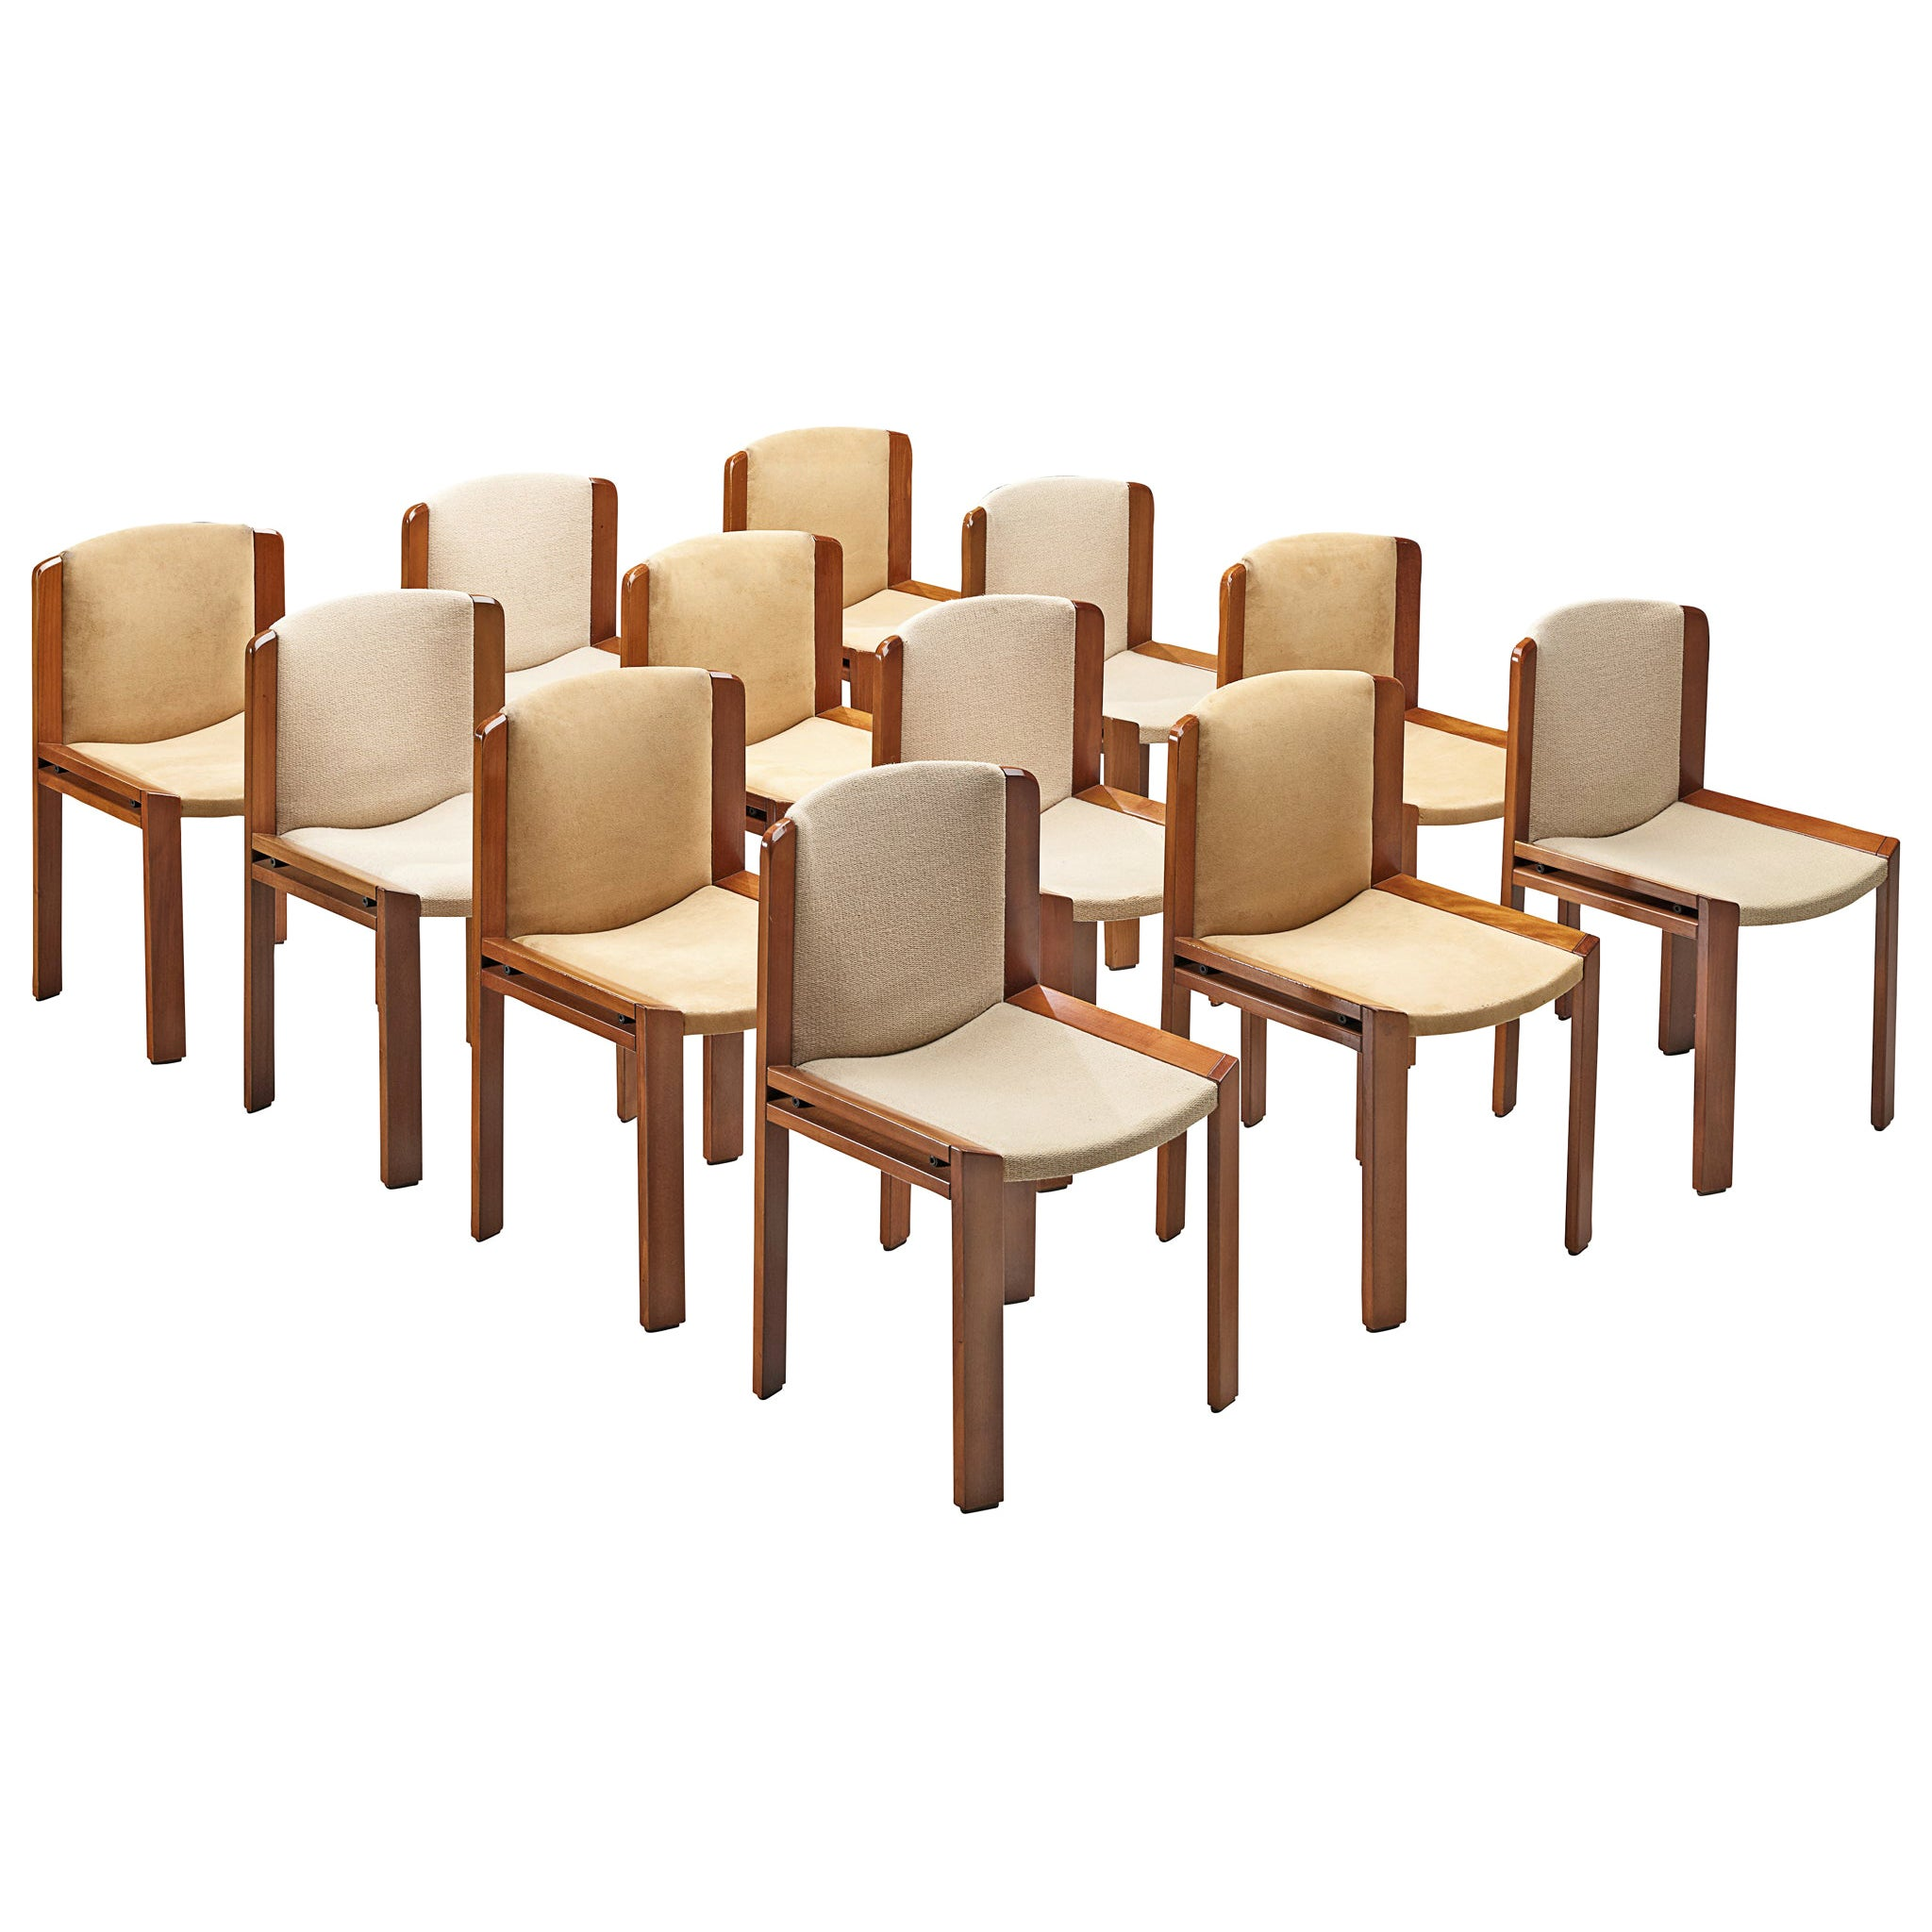 Set of Twelve Joe Colombo '300' Dining Chairs